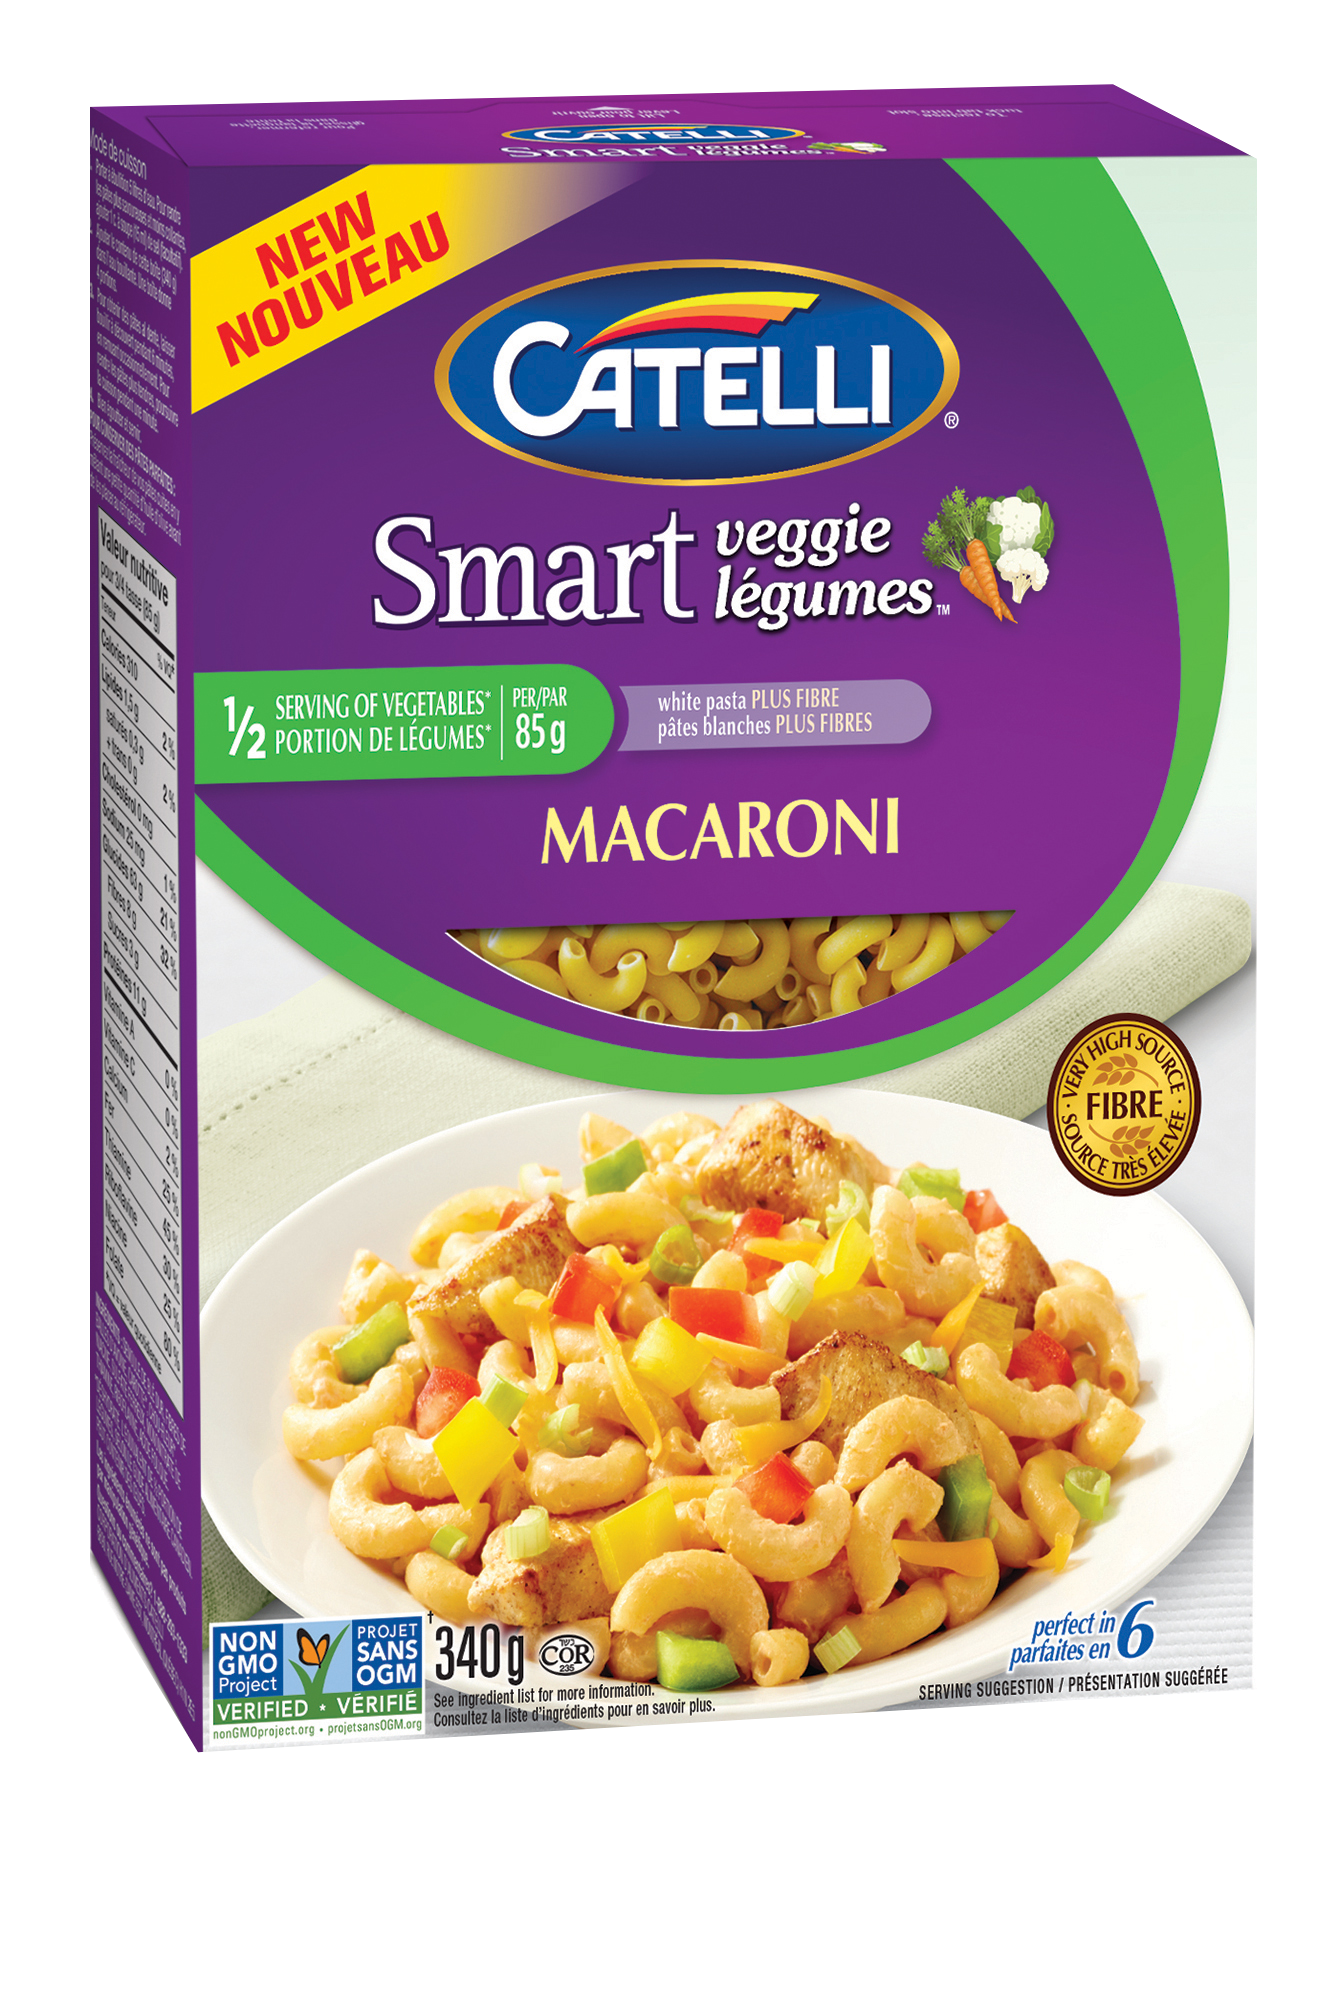 Catelli Smart Veggie Macaroni